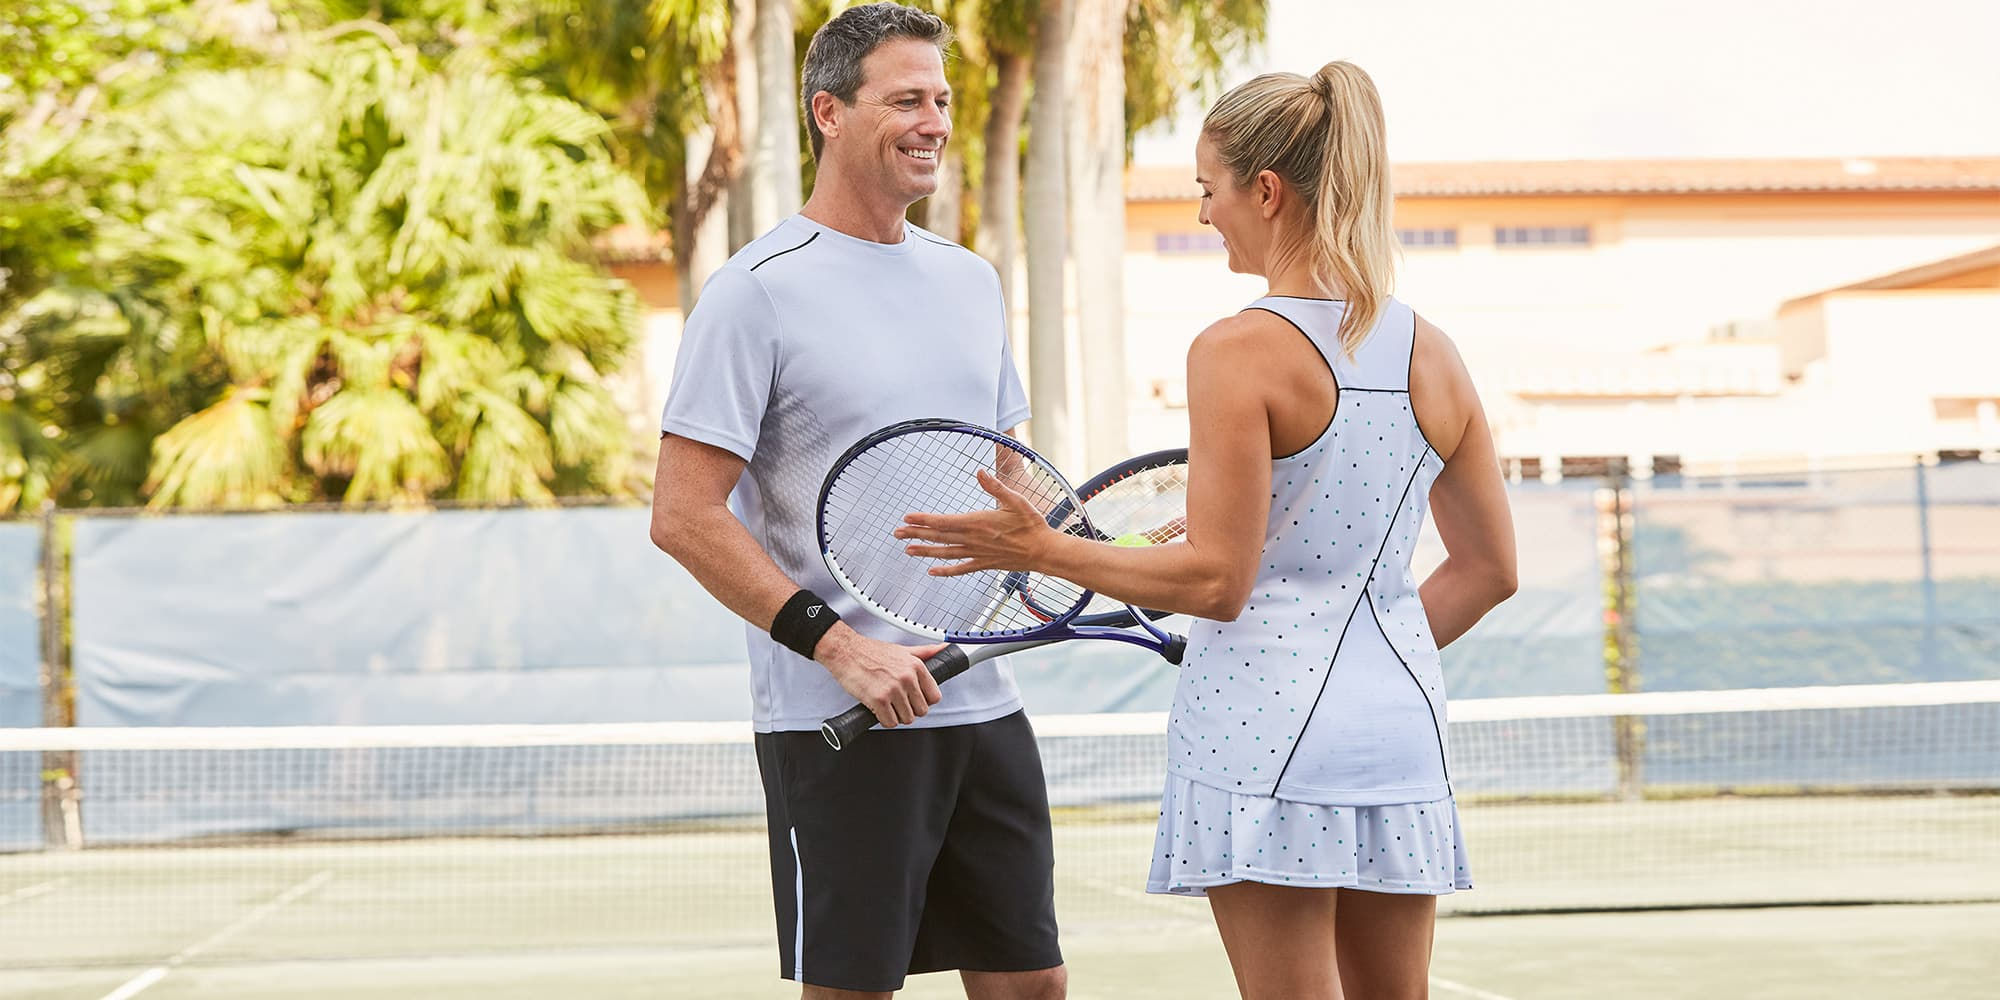 INTRODUCING TENNIS & COUNTRY CLUB ATTIRE